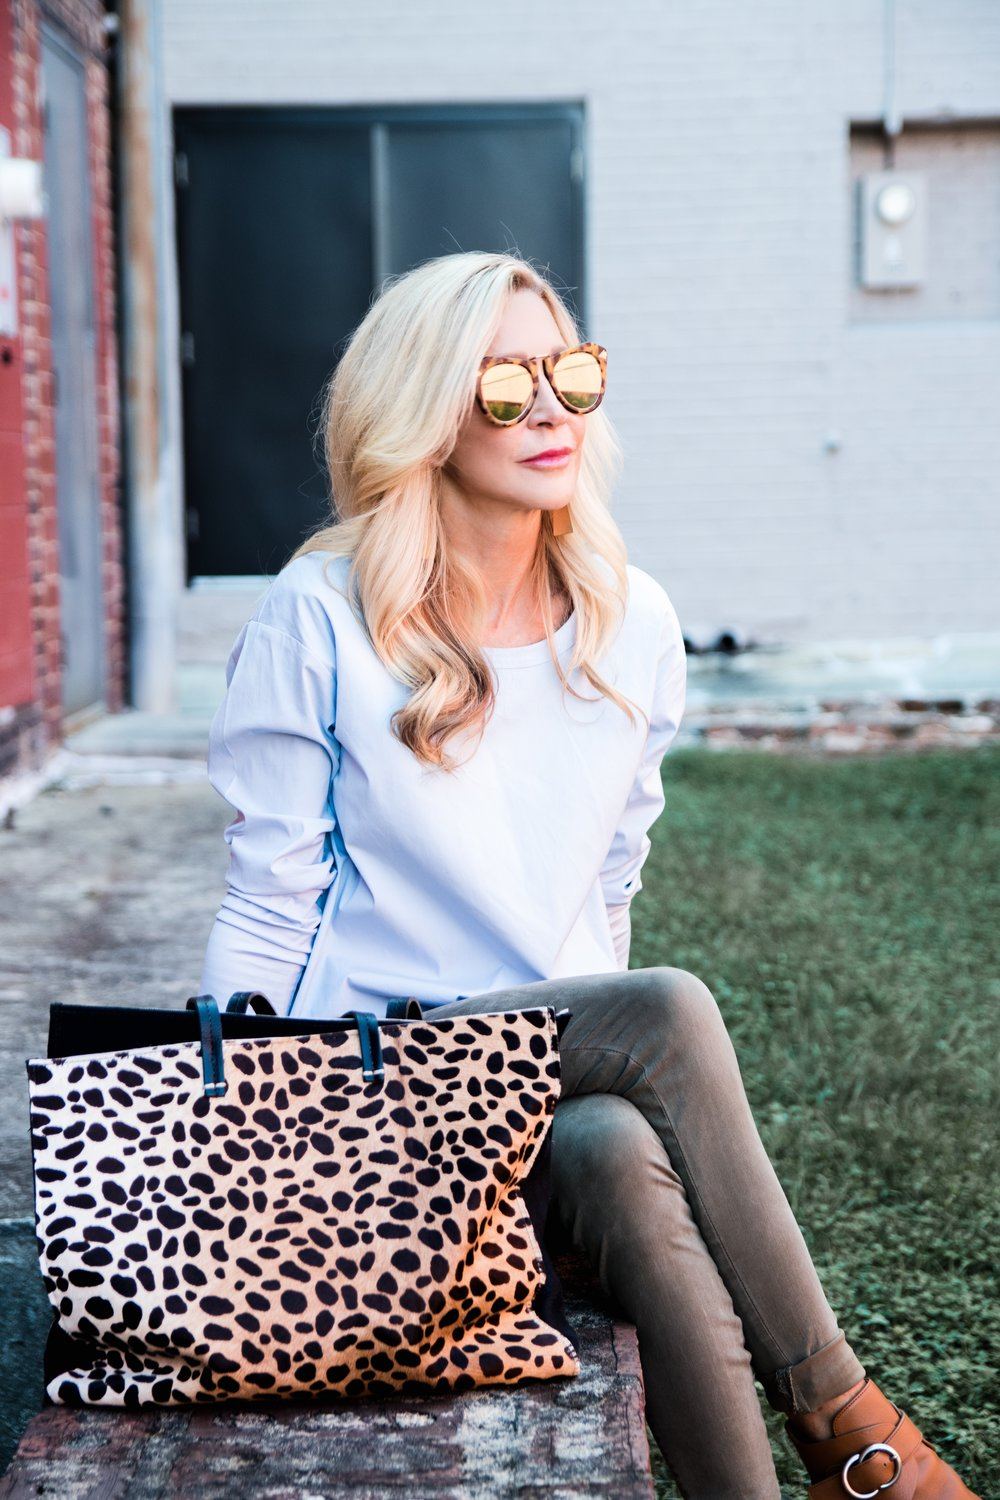 Leopard Bag - Transitional Fall Outfit